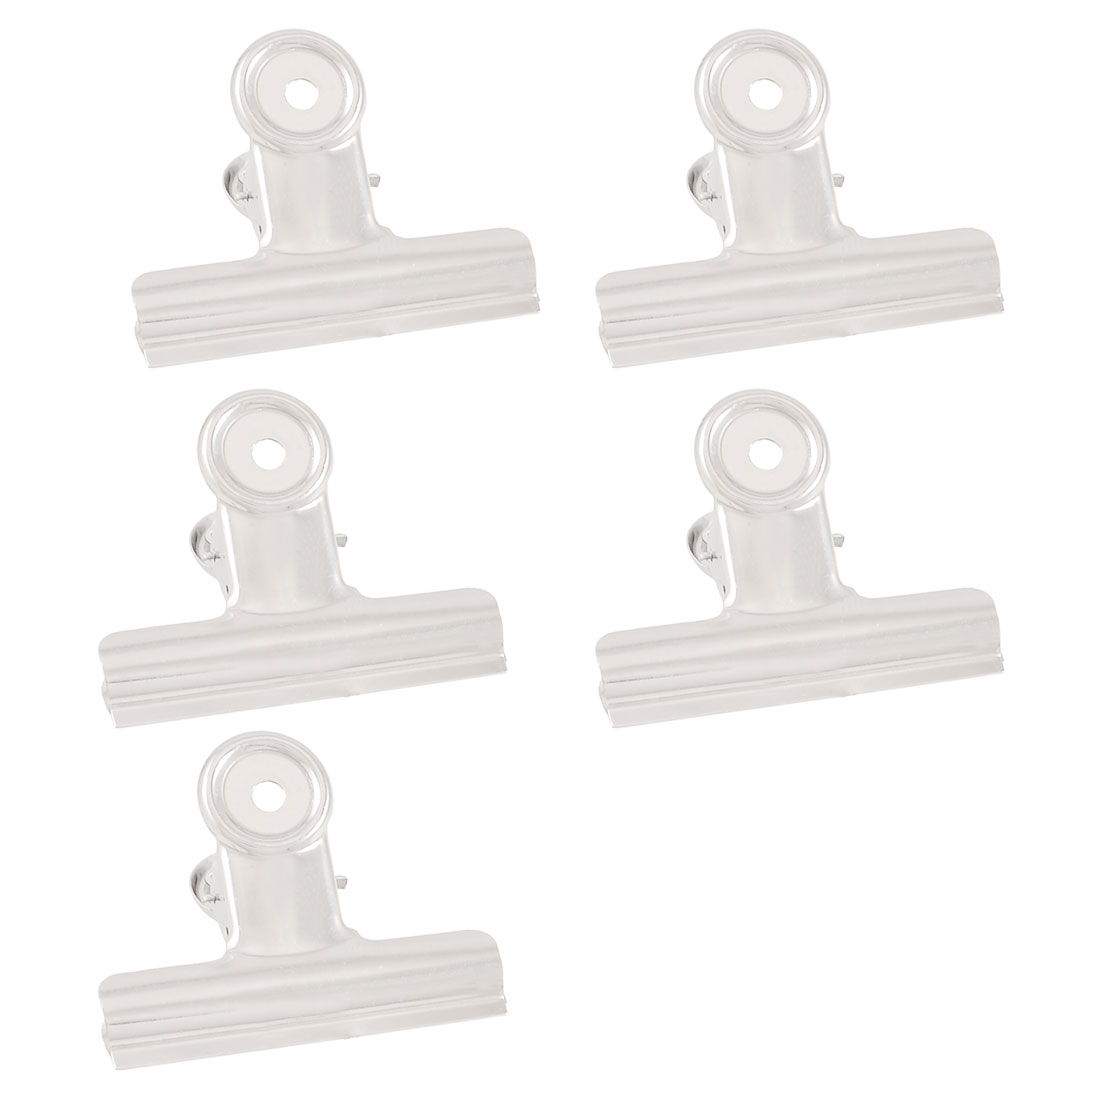 Stationery Office School File 8.5cm Width Binder Clips Clamps 5 Pcs